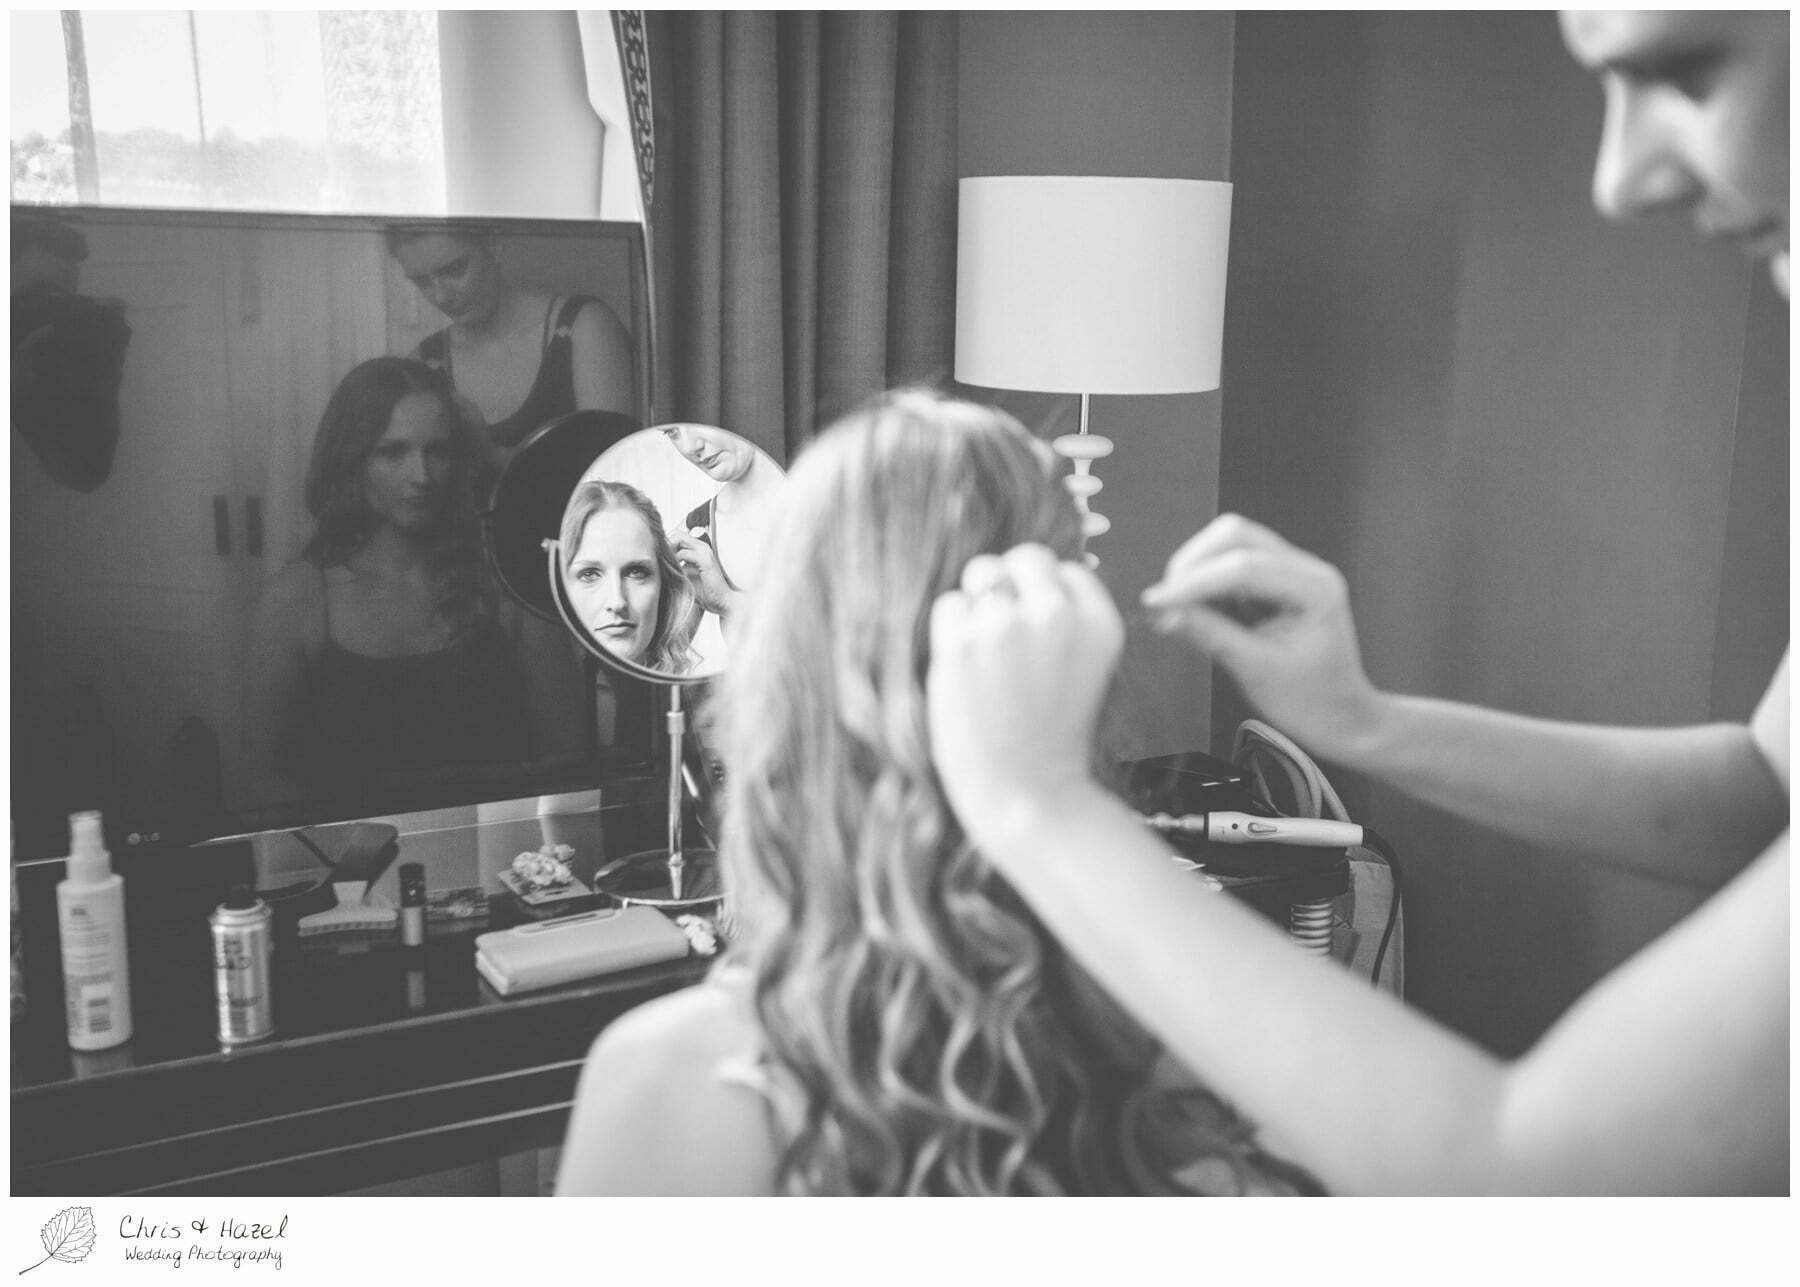 Bridal Hair and make up, Wedding preparations, The Gainsborough Bath Spa hotel, Gainsborough Hotel Bath, documentary wedding photography, Chris and Hazel Wedding Photography Bath, Andy Frost Sian Upson